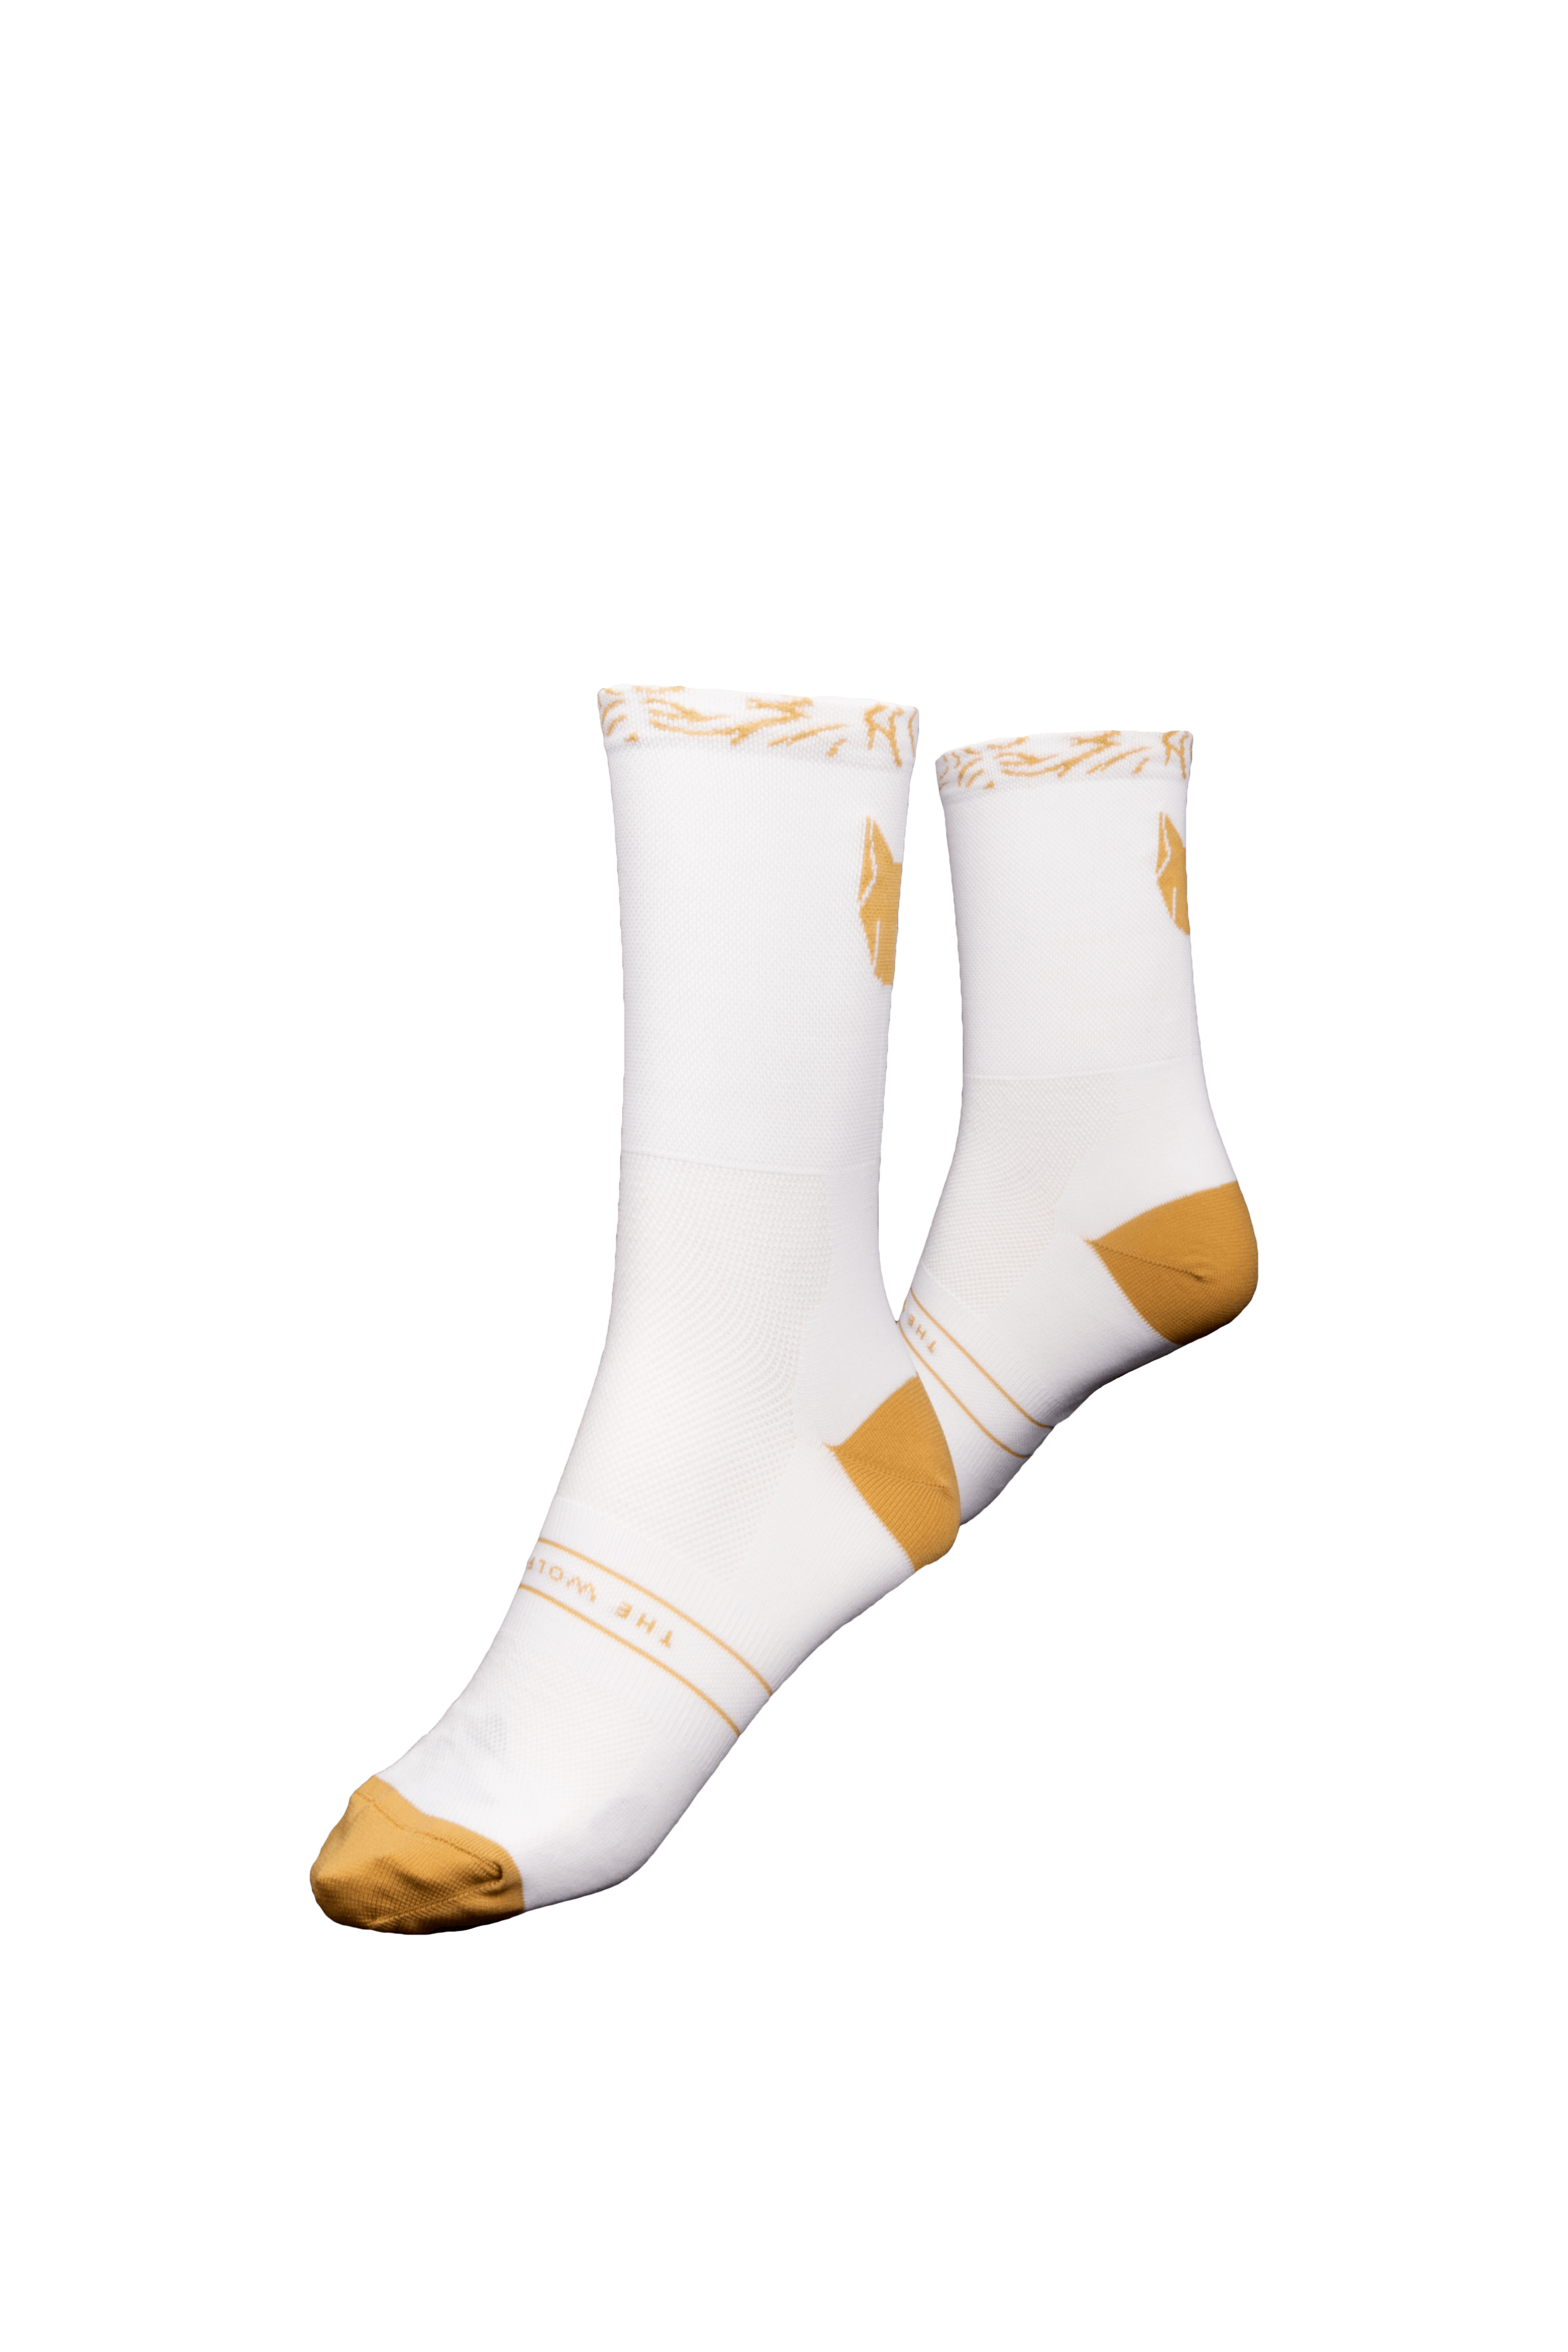 The Wolfpack 2021 Chaussettes Blanc